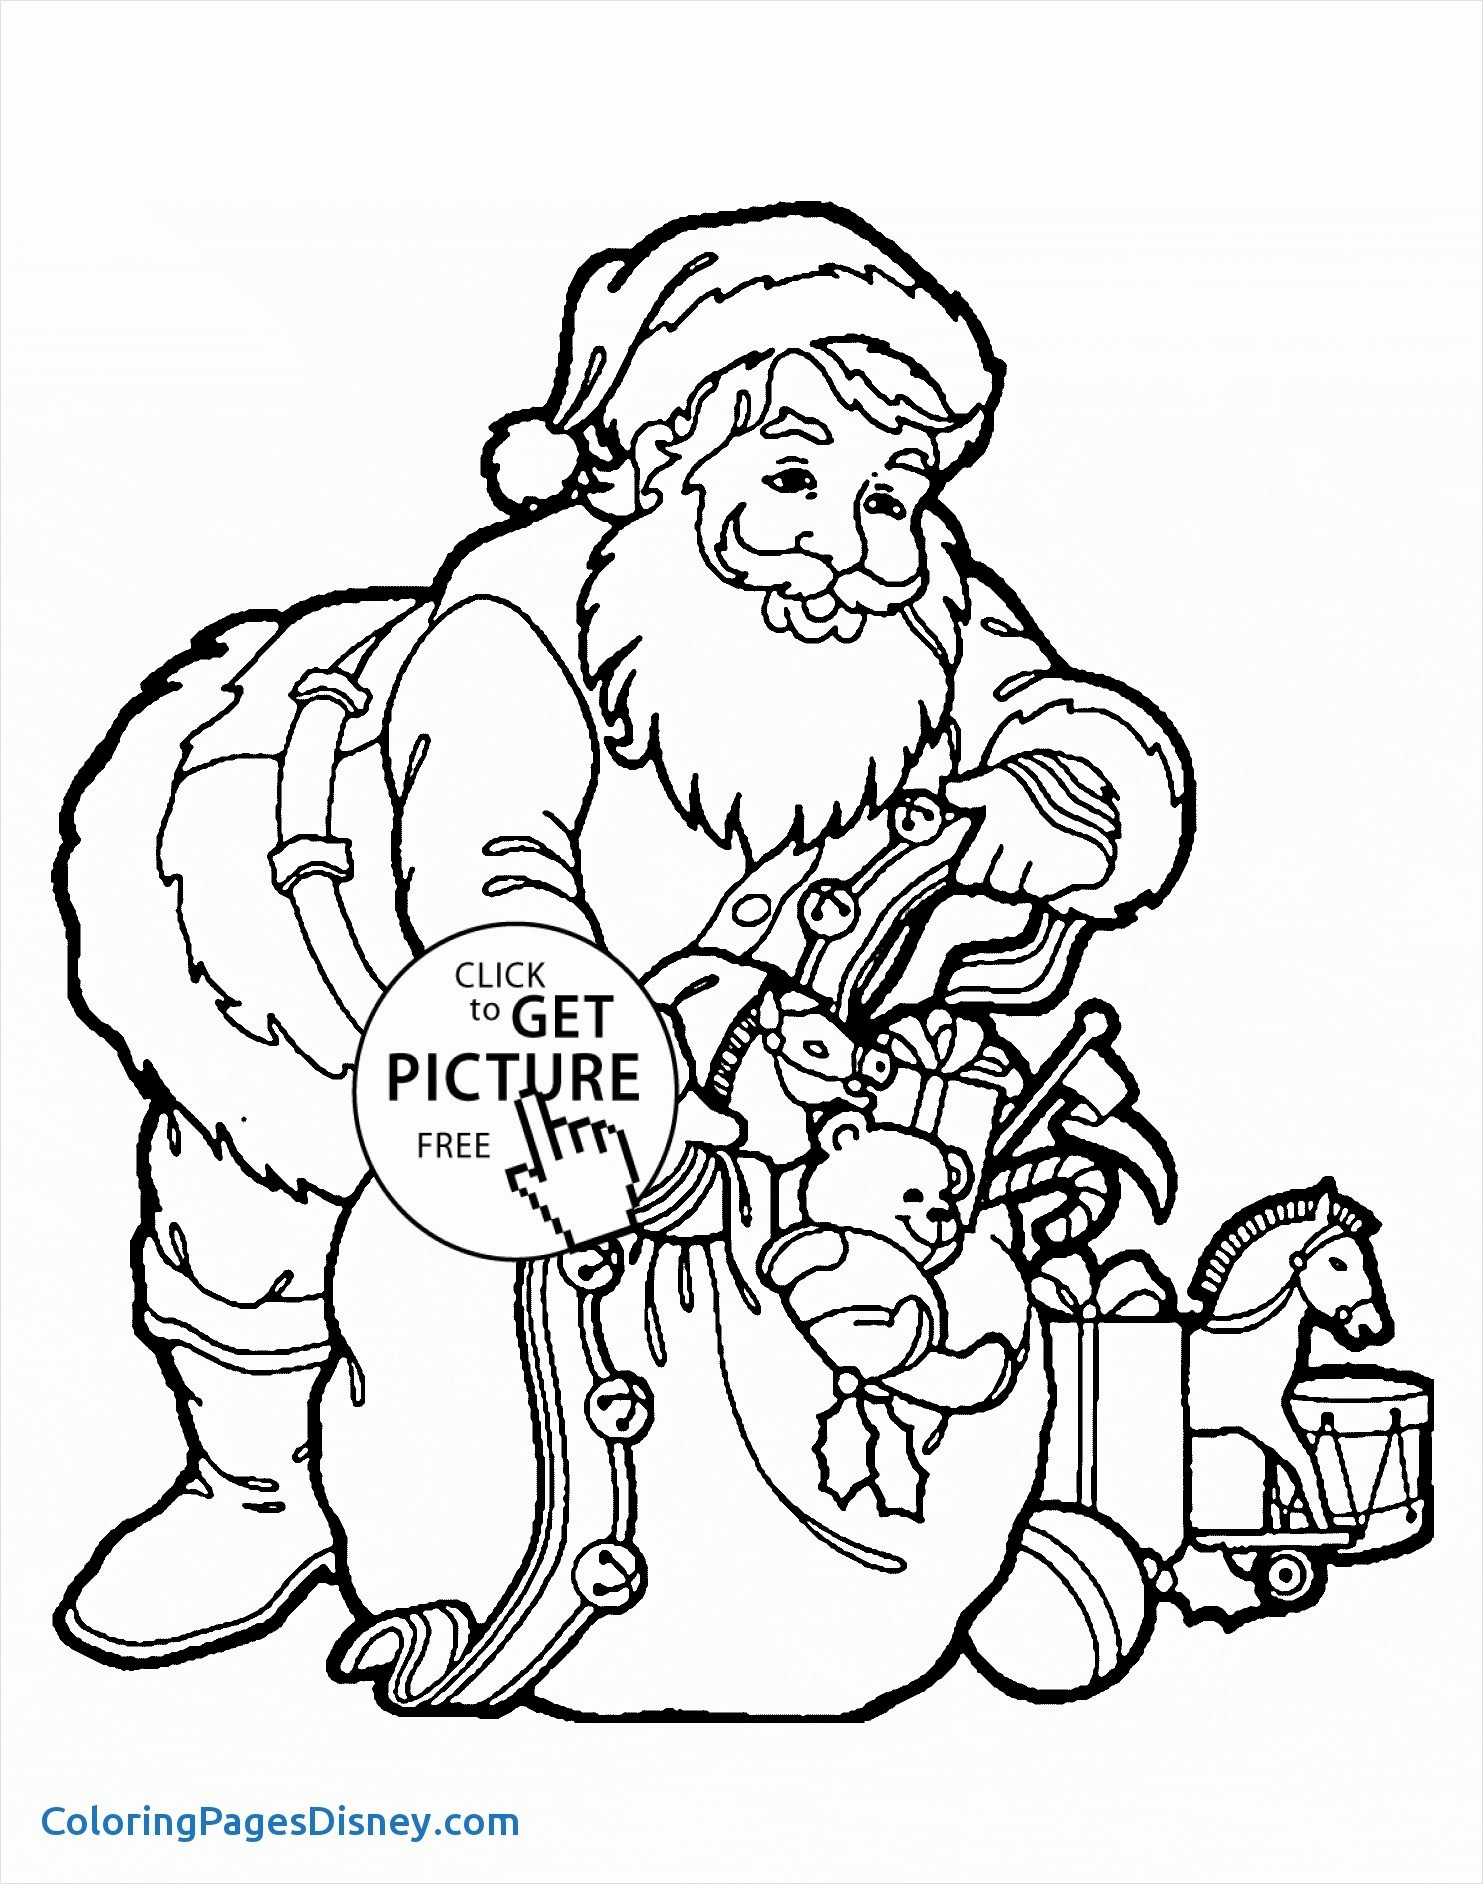 Reindeer Santa Claus Coloring Pages With